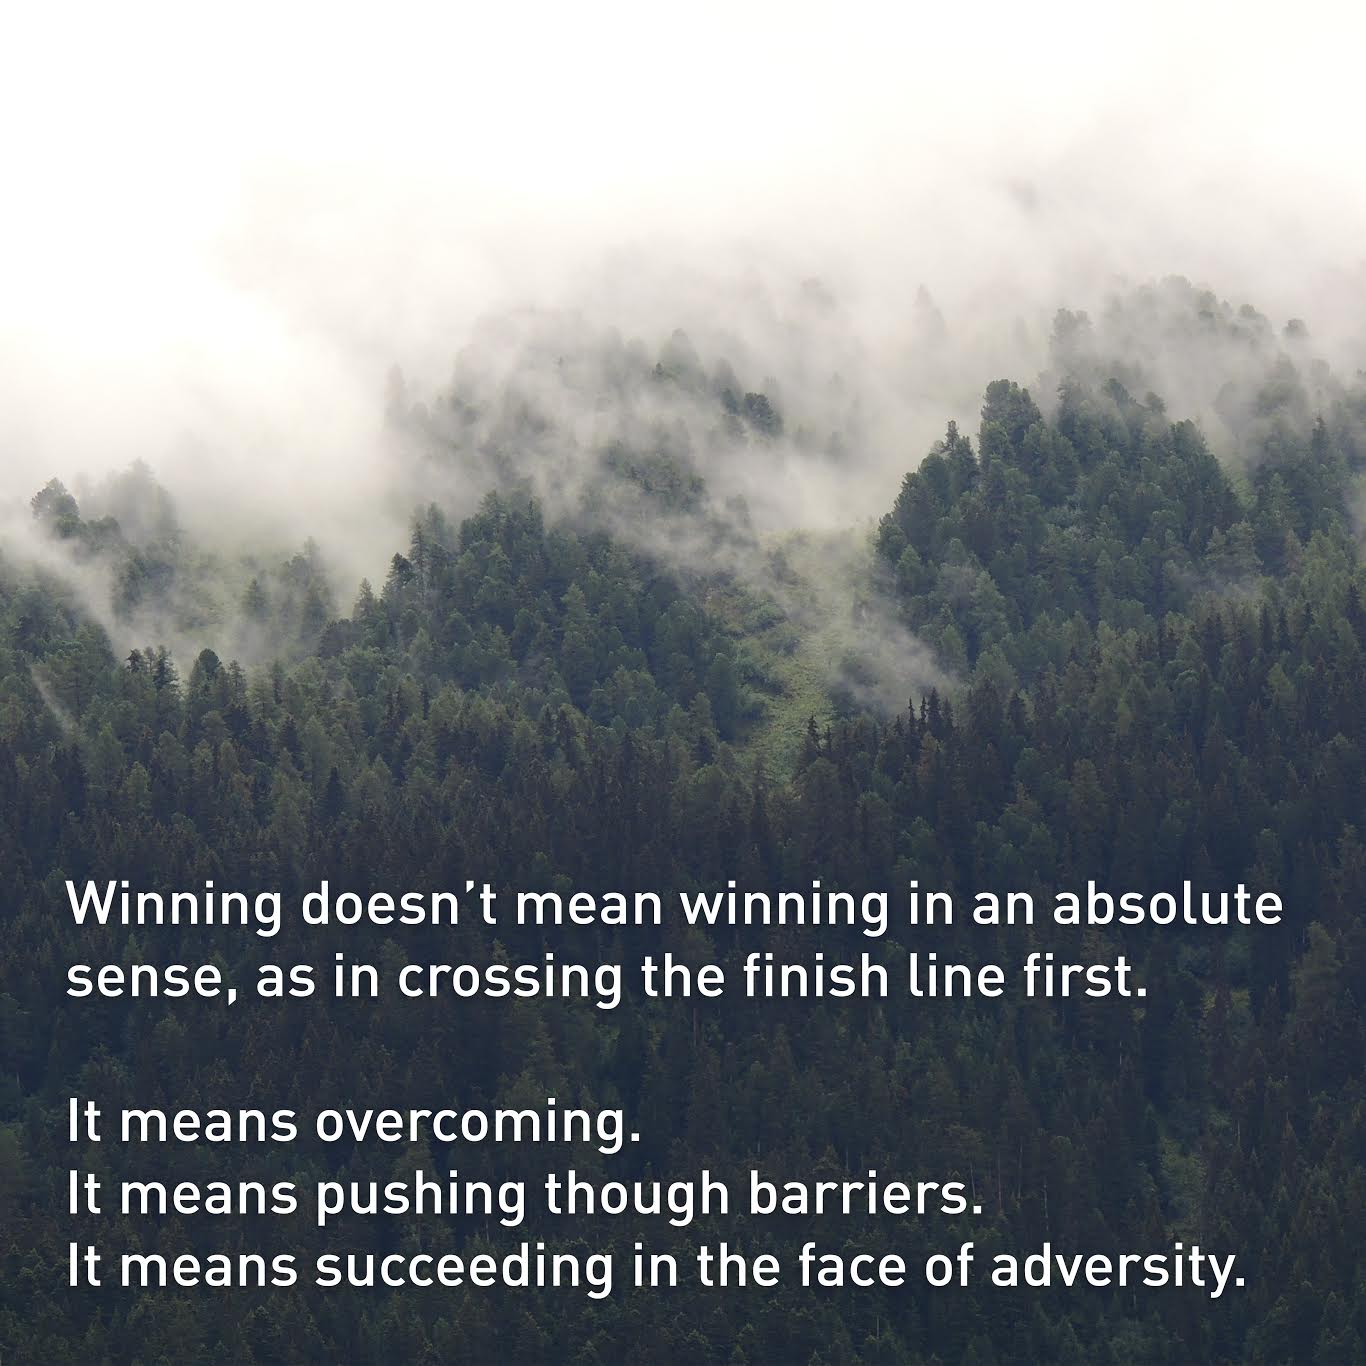 James H. Osborne The Meaning of Winning